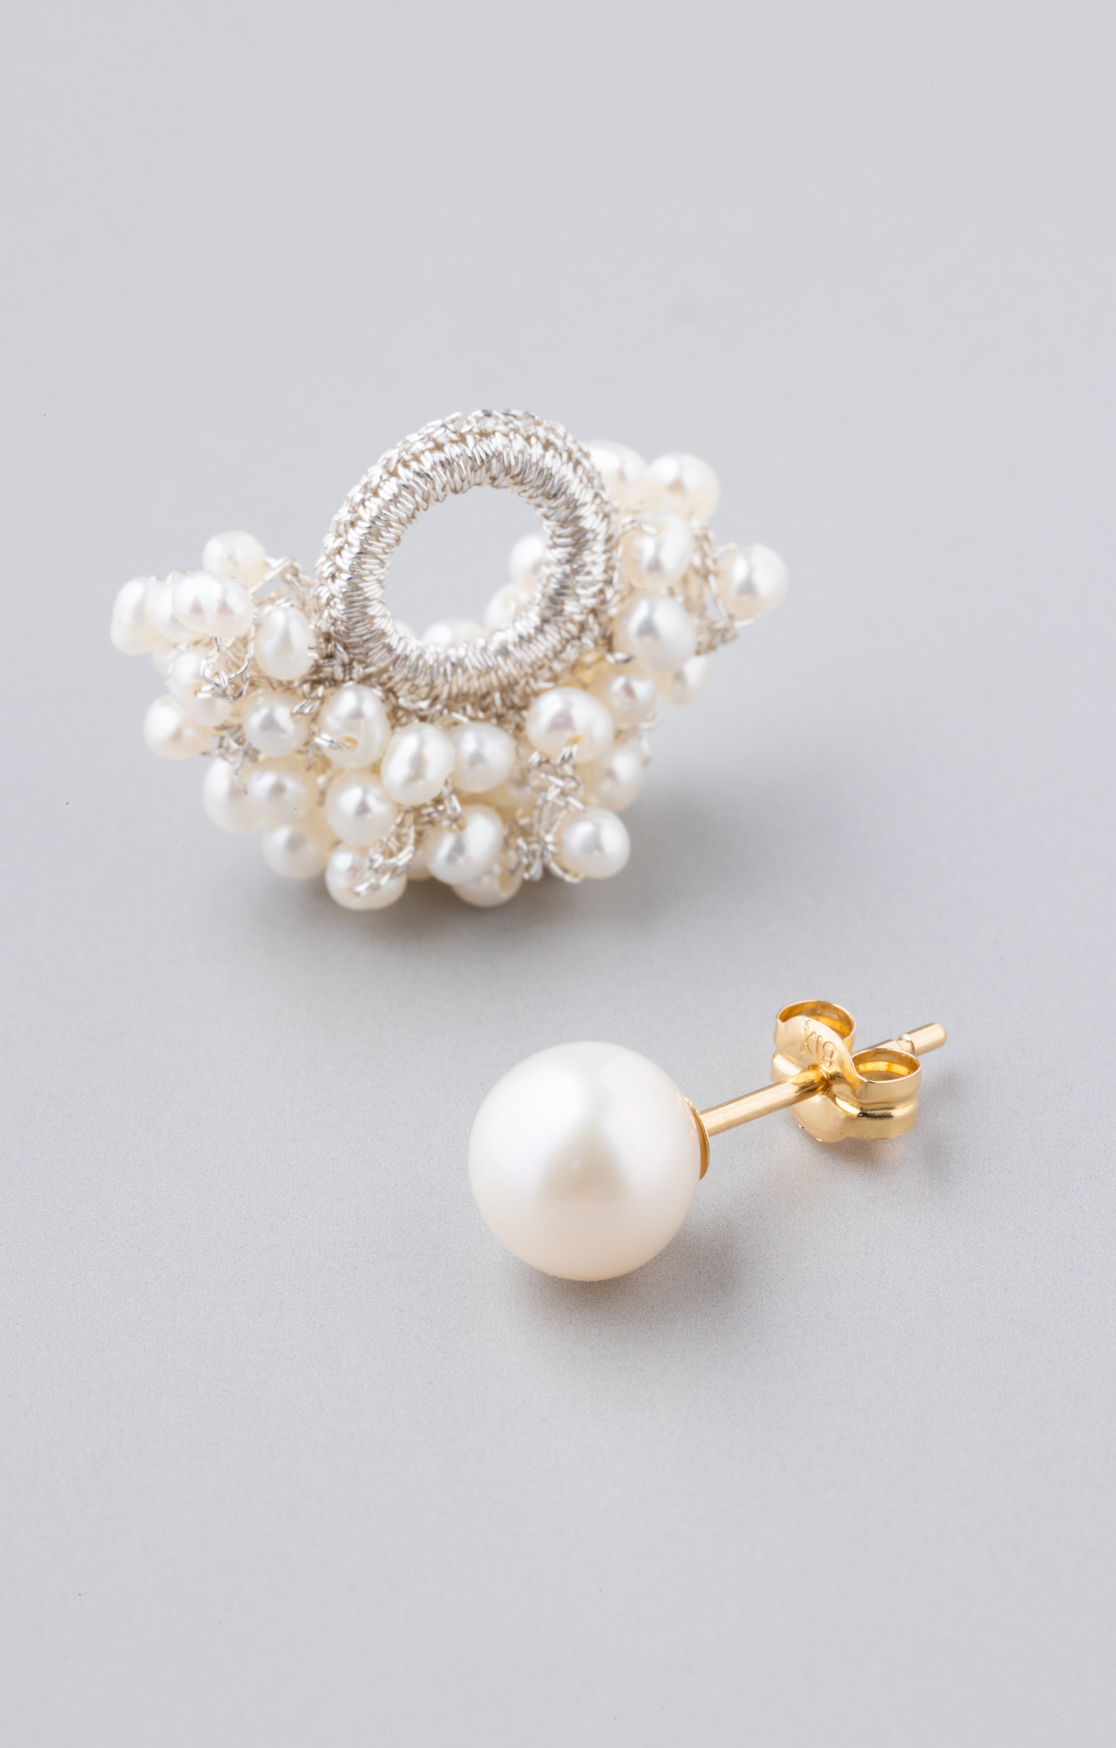 Pearl charm pierce